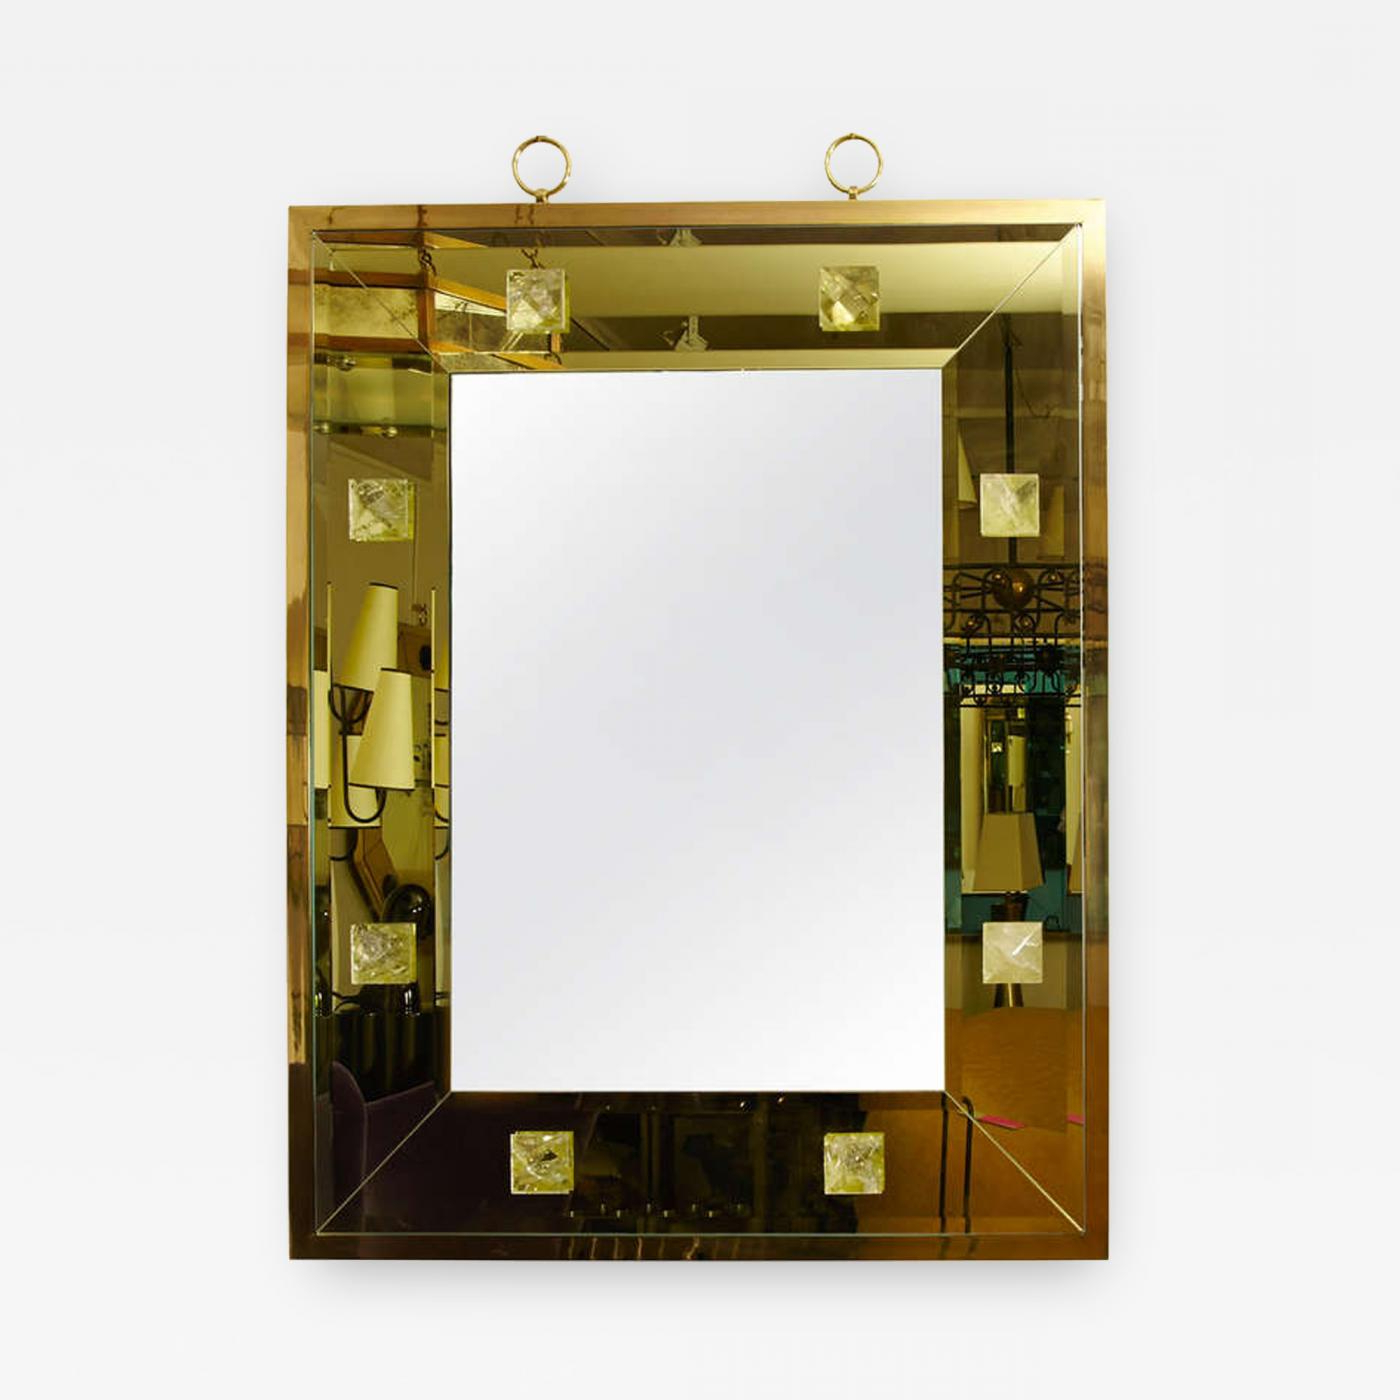 Dandre Wall Mirrors Throughout 2020 Andre Hayat – Andre Hayat Pale Yellow Rectangular Mirror (View 20 of 20)